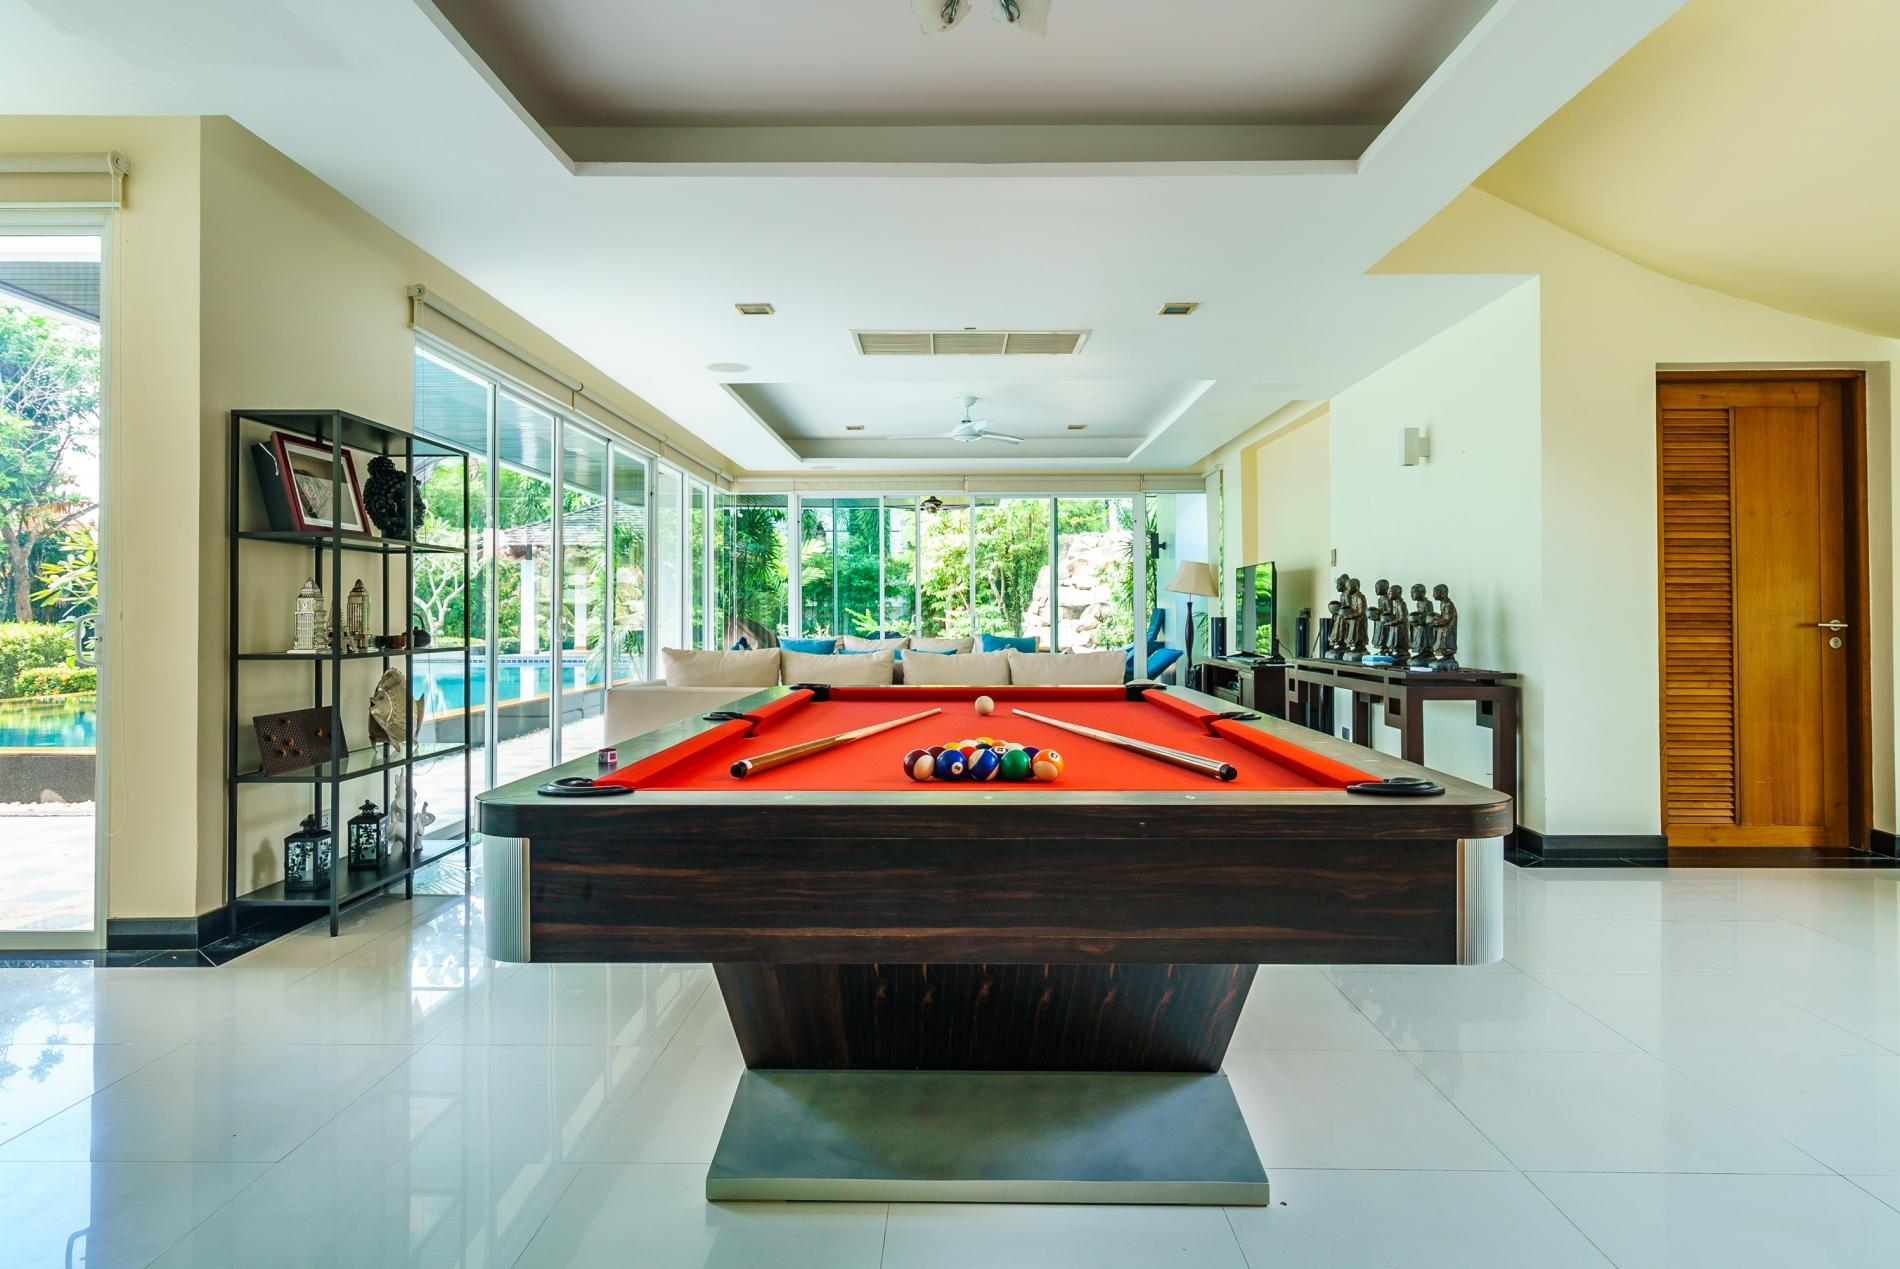 Apartment Kyerra Villa -  Giant private pool in Kamala  pool table  ping pong table  photo 20384589